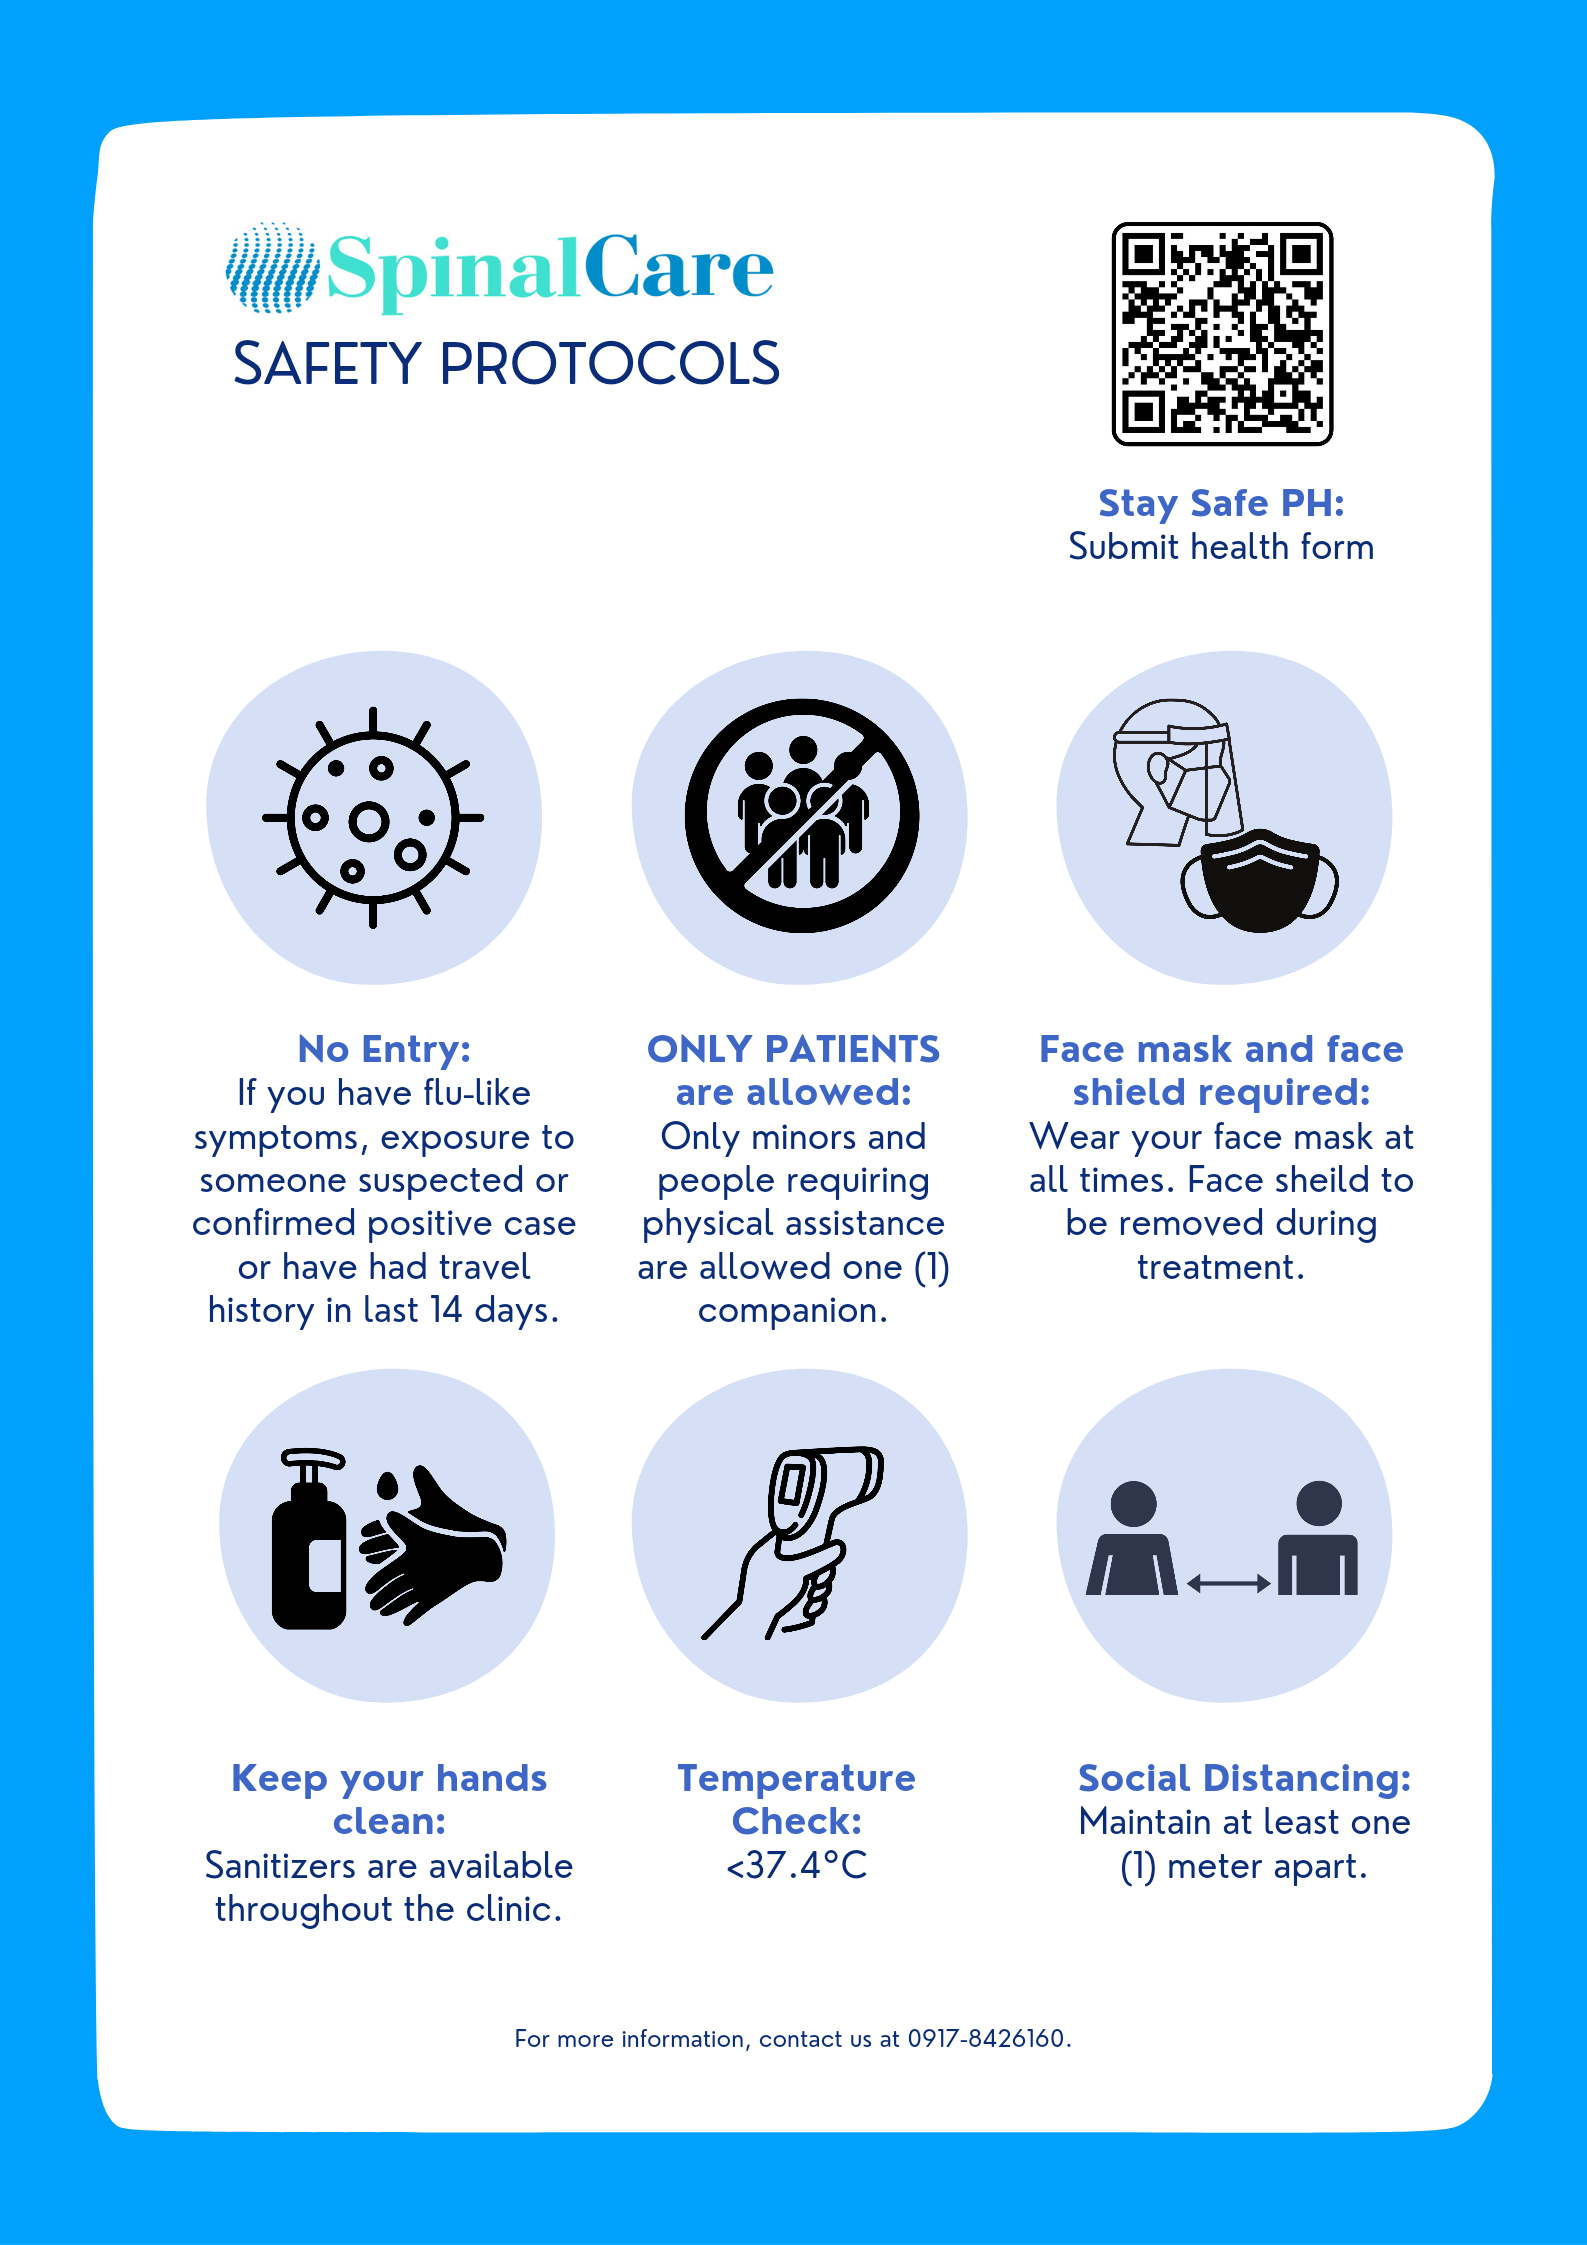 Spinal Care Safety Protocol 1